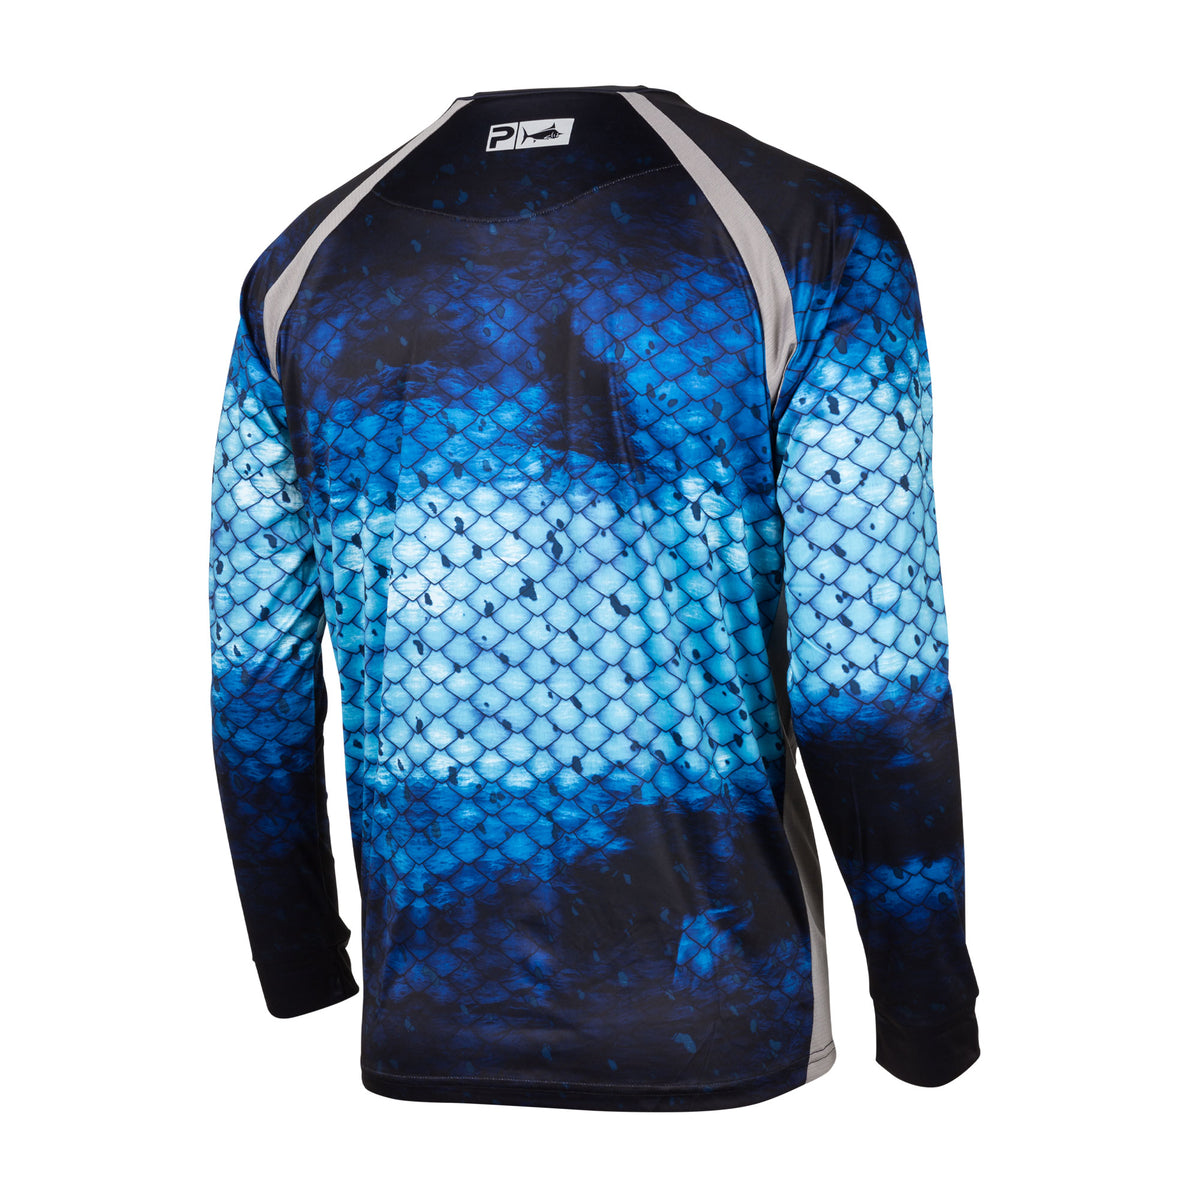 Vaportek Performance Long Sleeve Shirt Big Image - 2